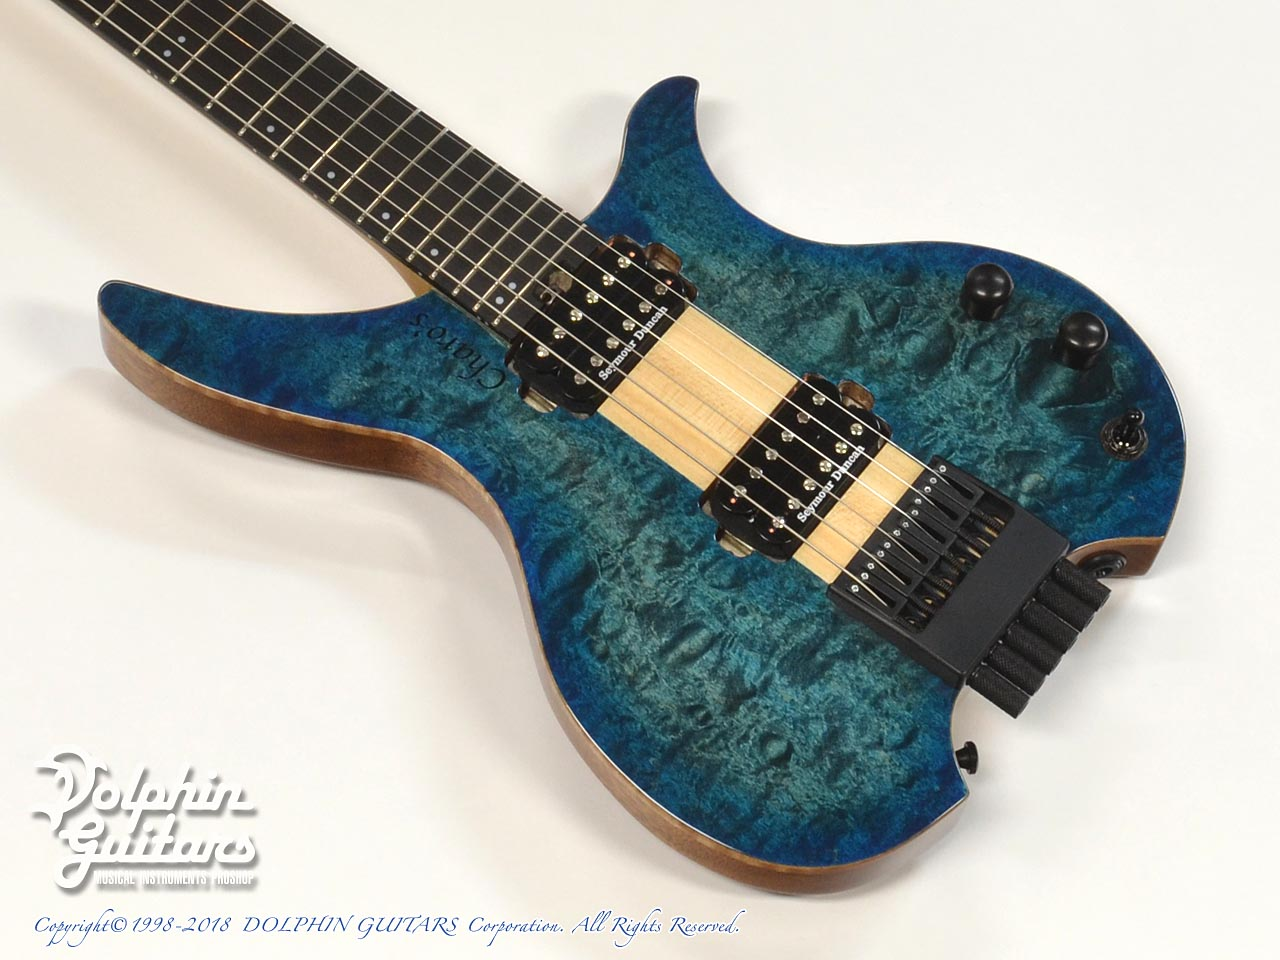 Charo's: CH-G6 Headless Guitar (Quilted Maple) (1)